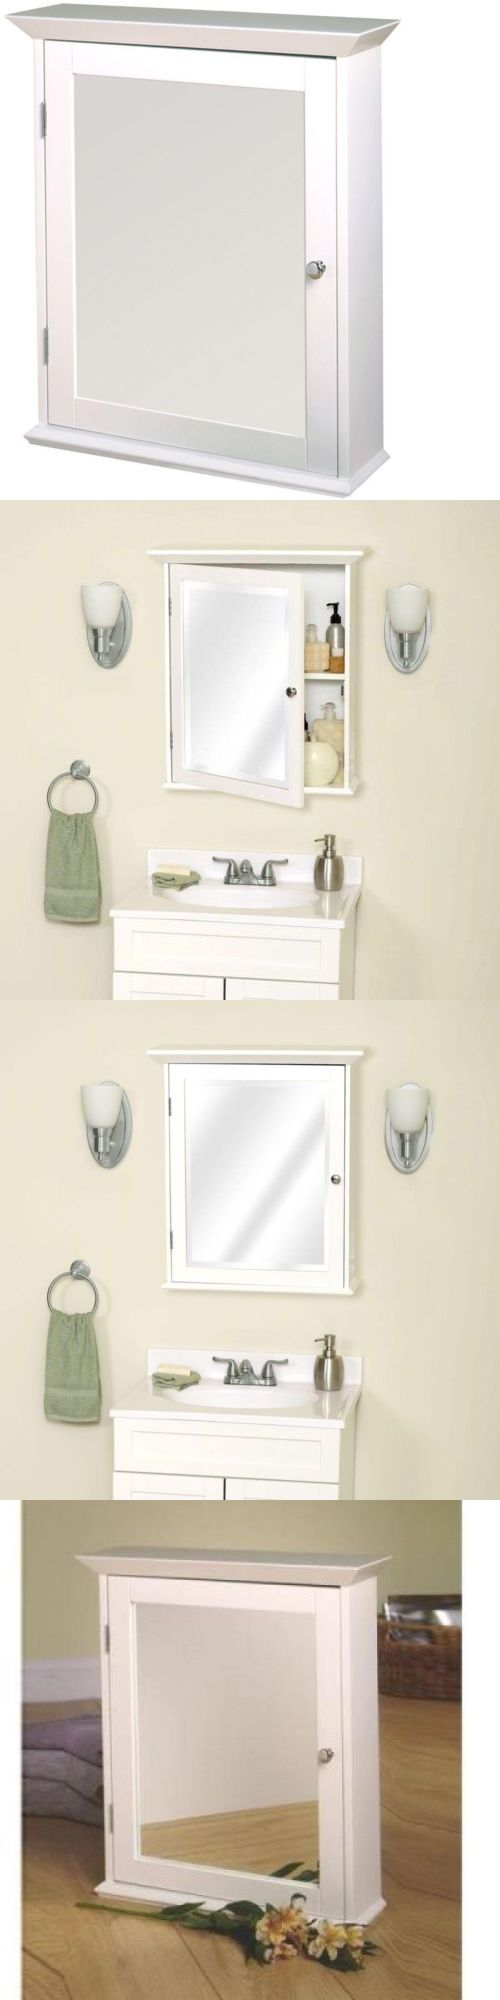 best 20+ white medicine cabinet ideas on pinterest | small